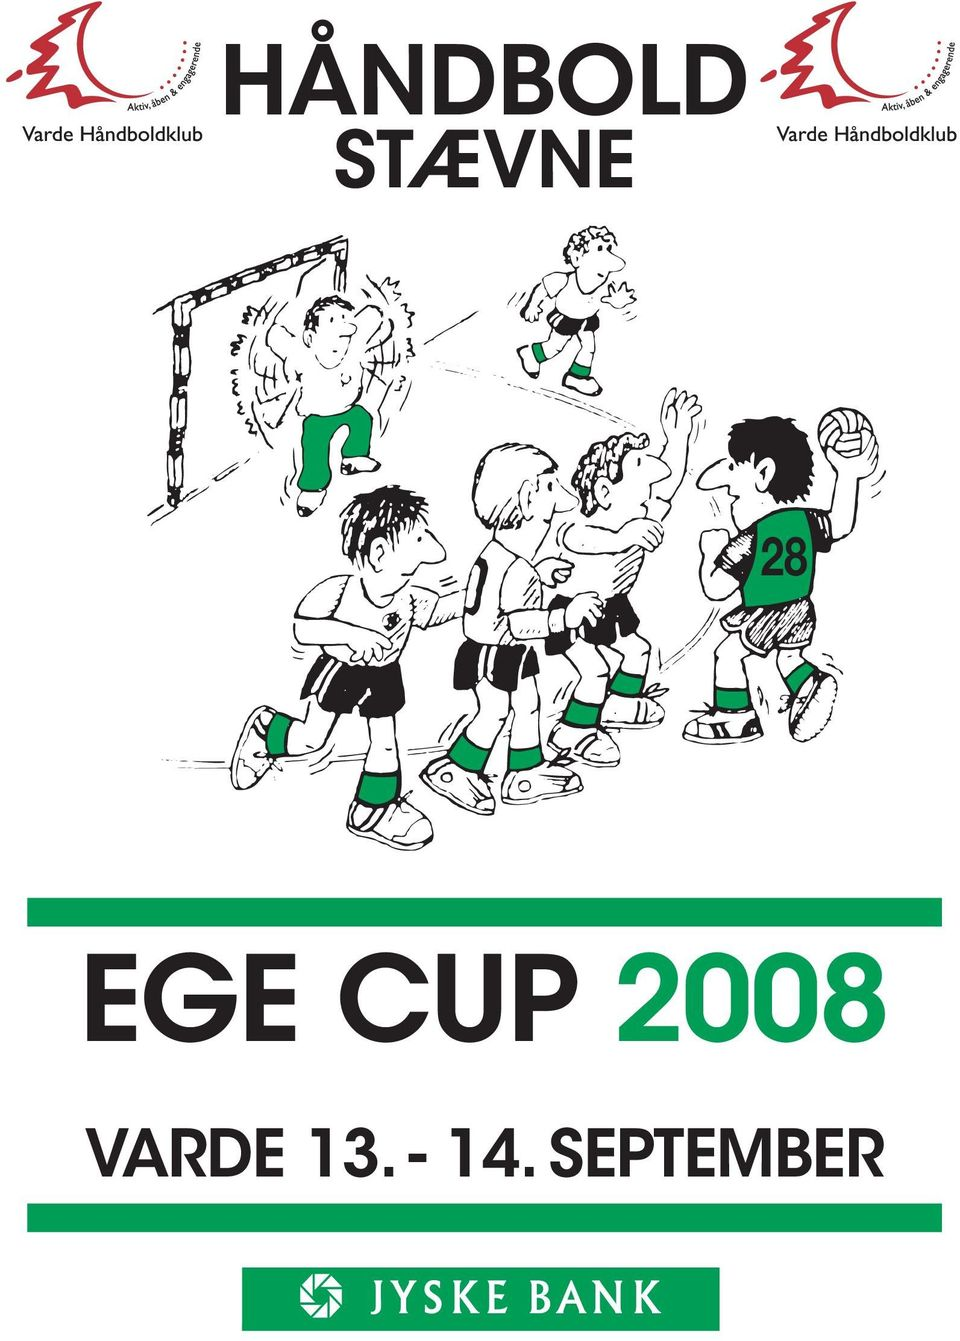 CUP 2008 VARDE